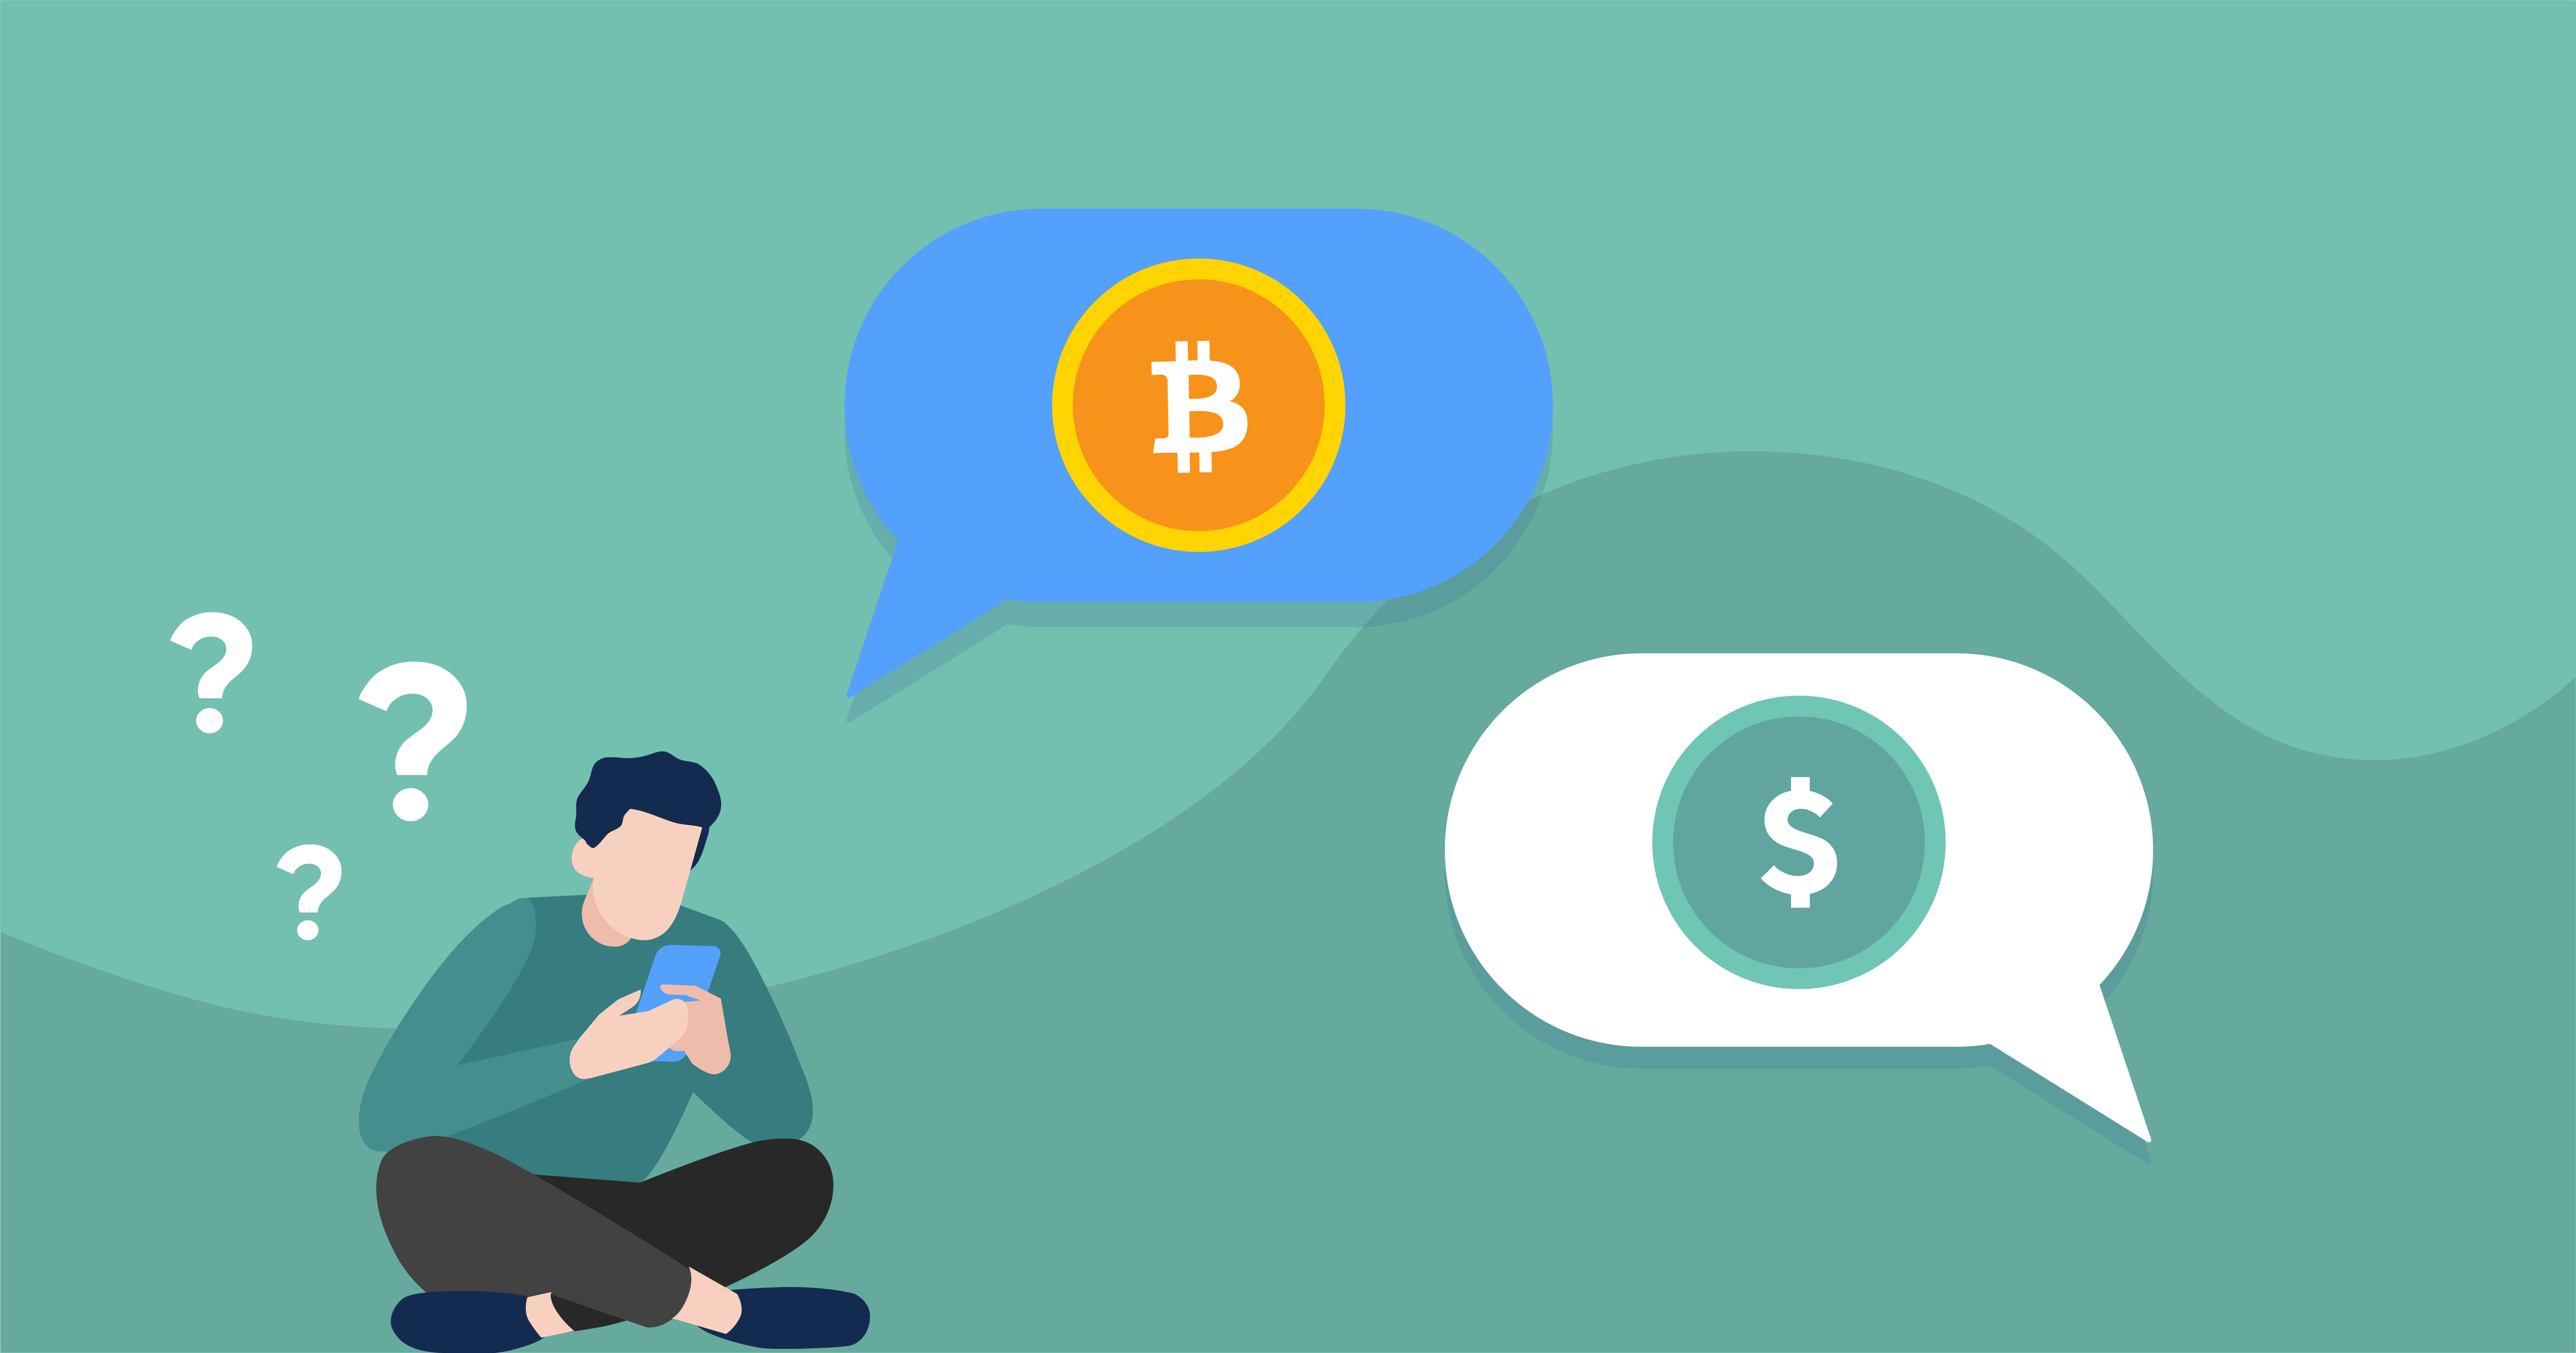 I Paid For Something With Crypto - How Do I Do My Taxes?